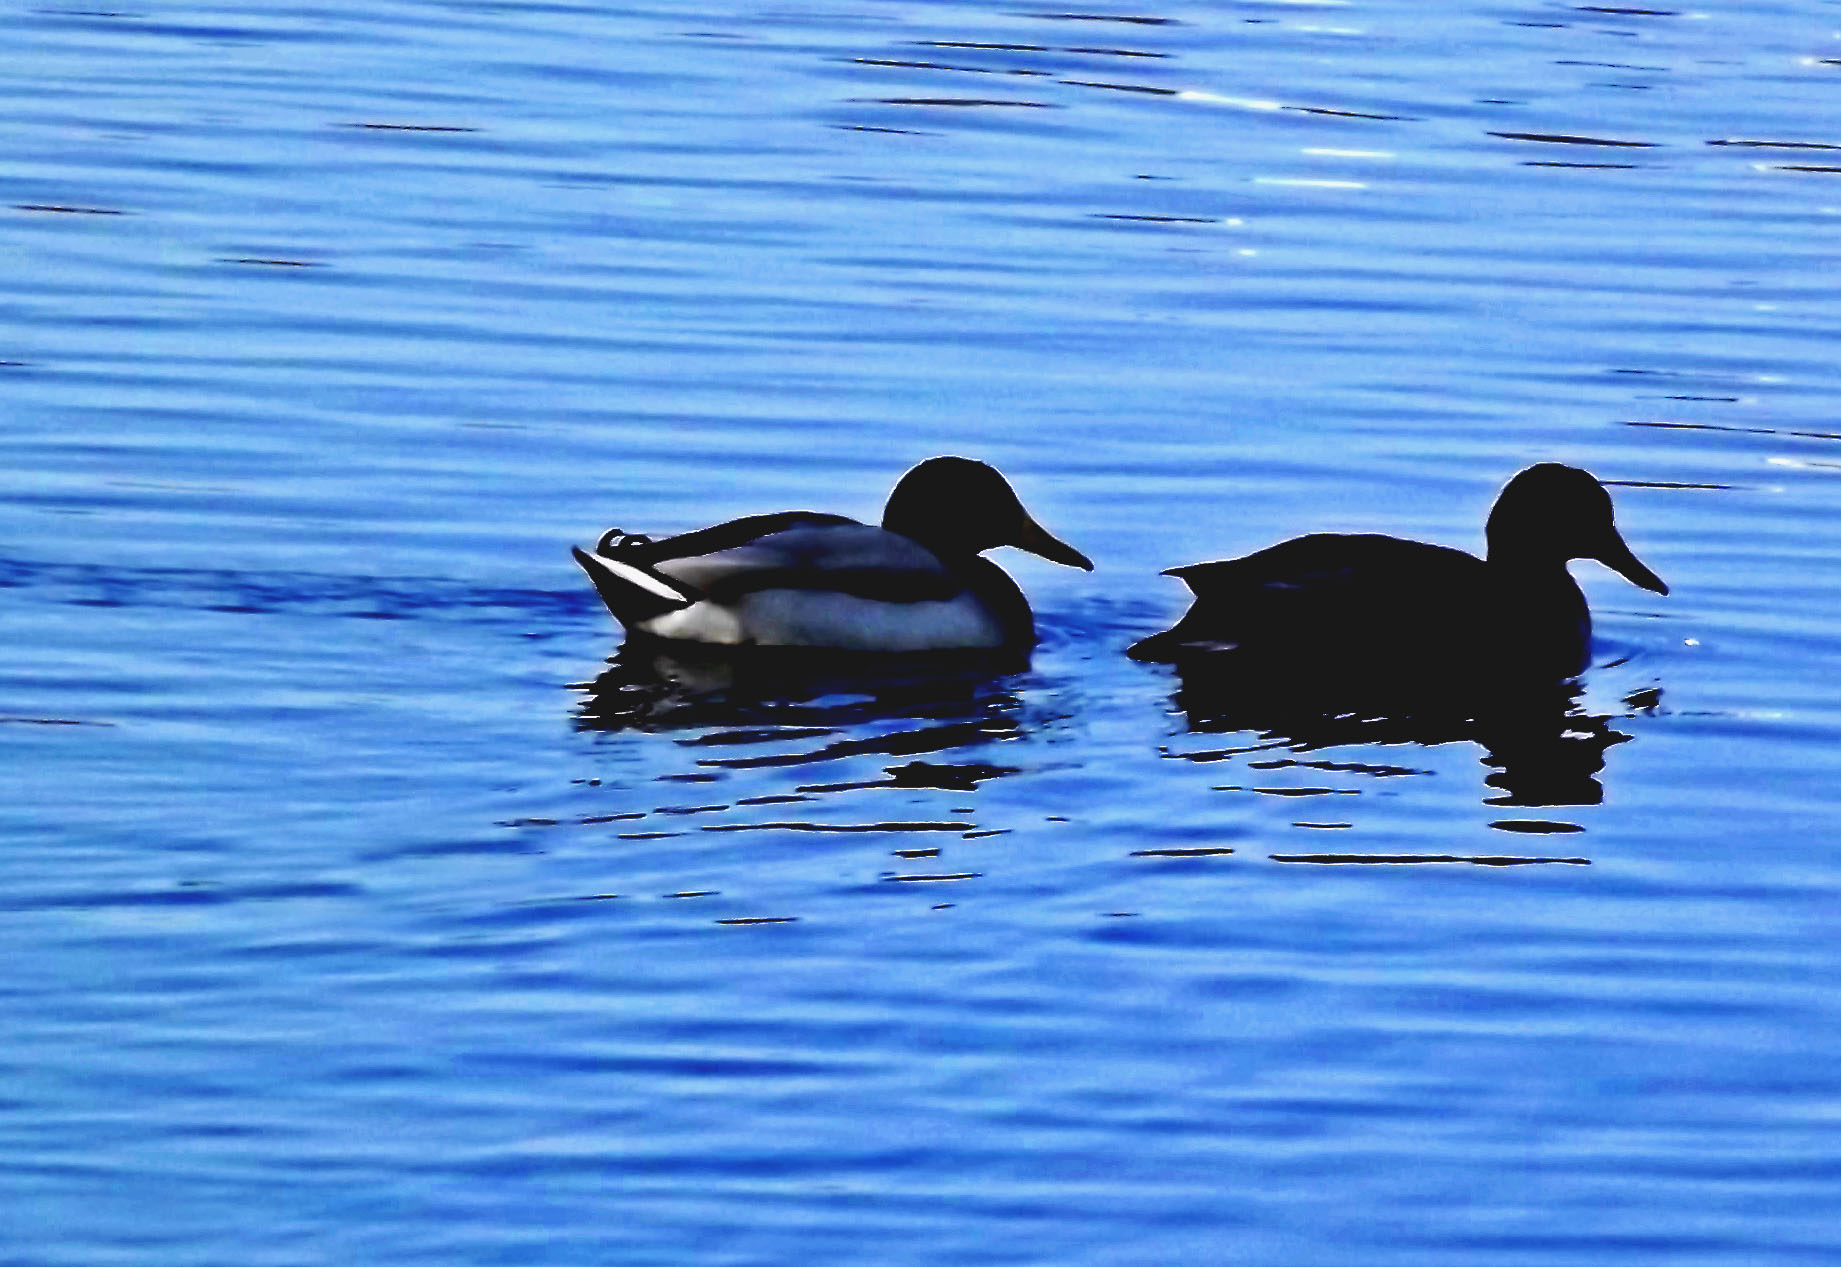 Mallard Silhouettes At Dusk In Blackberry Bay